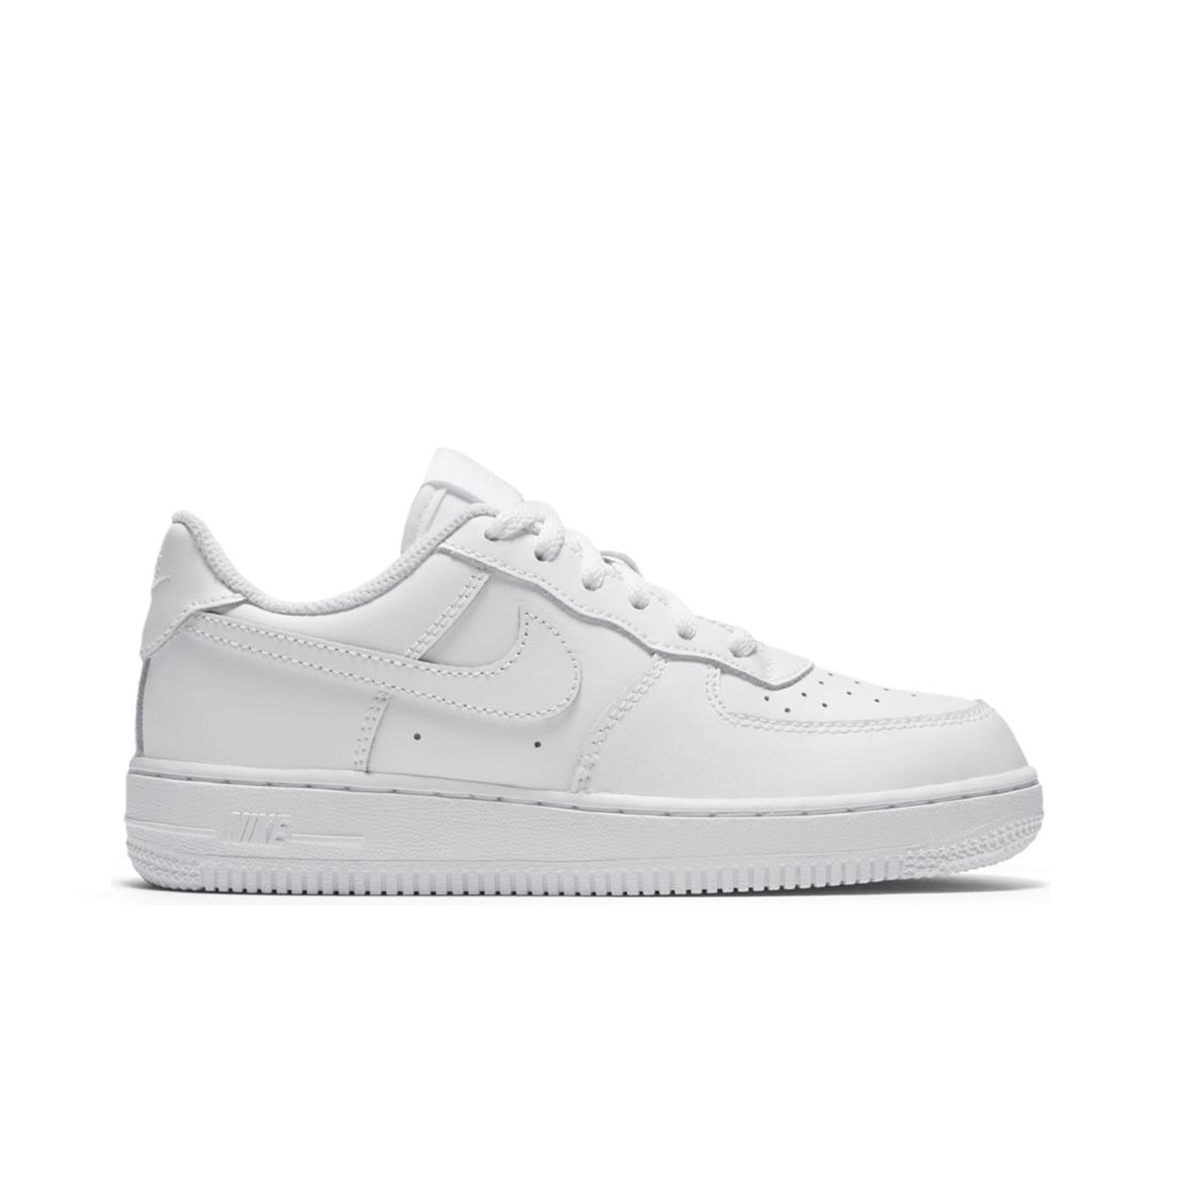 AIR FORCE 1 LOW BAMBINO